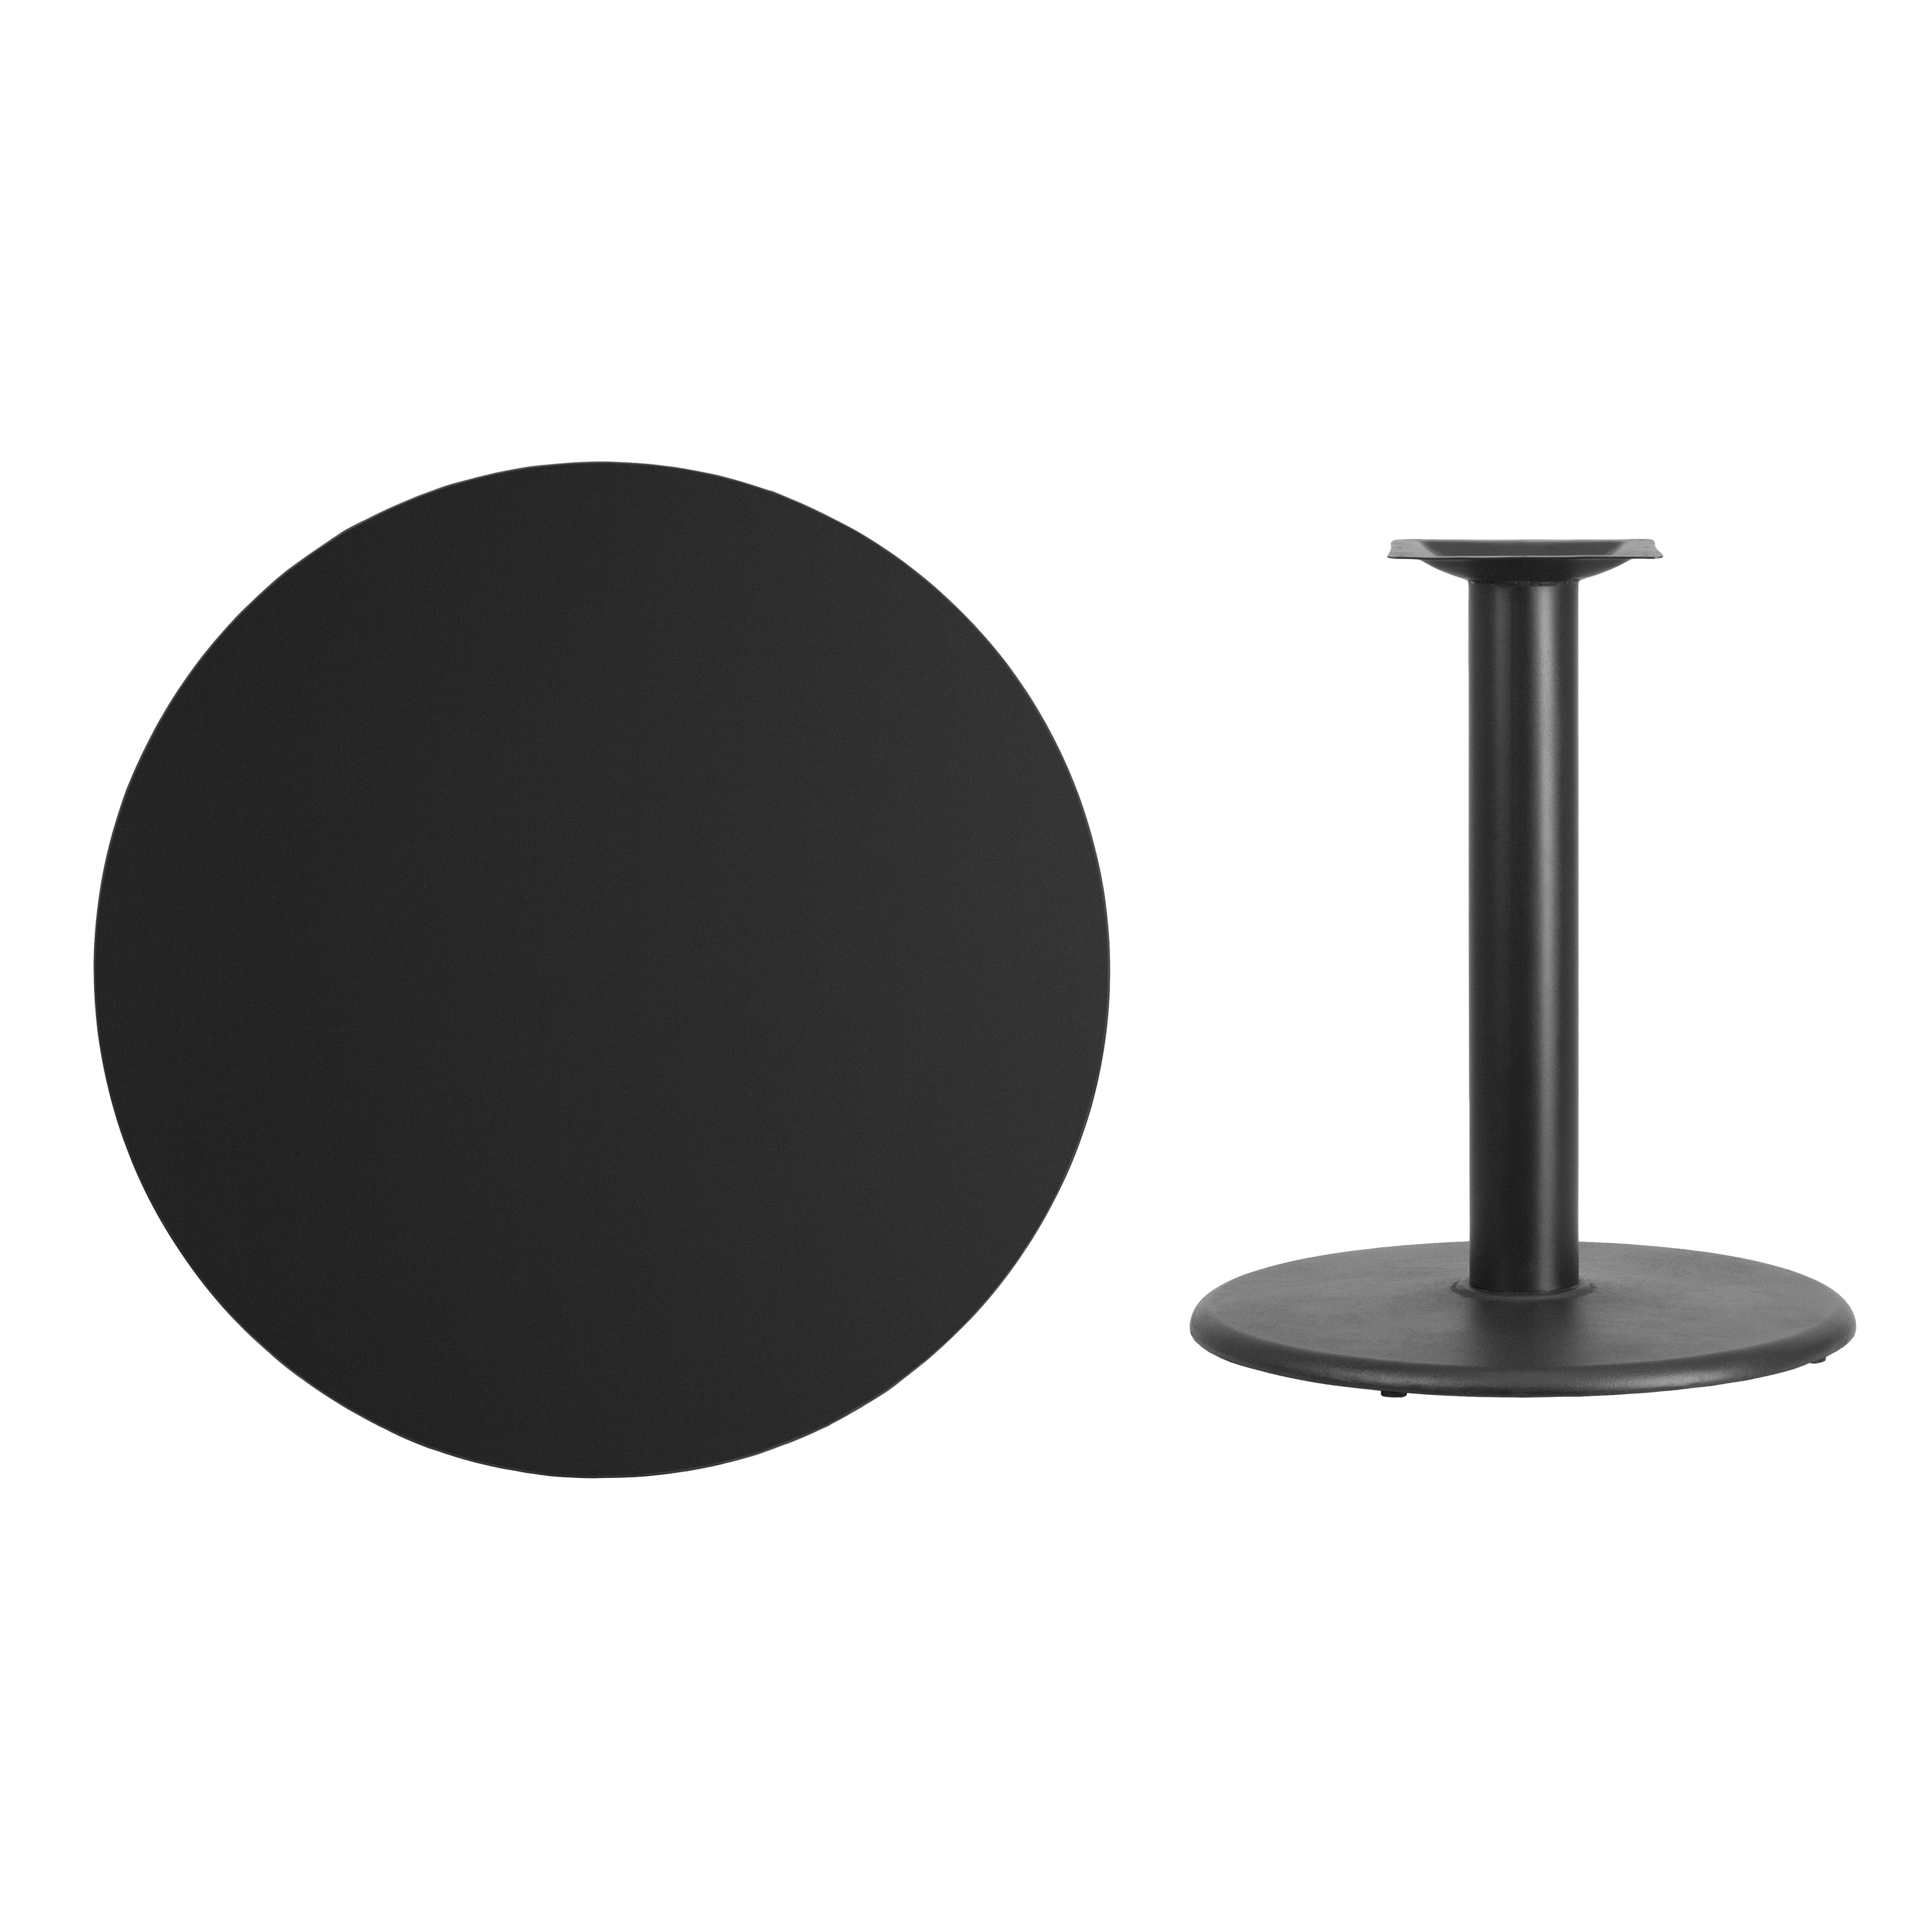 36 Inch Commercial Round Table Top And Base Ebay